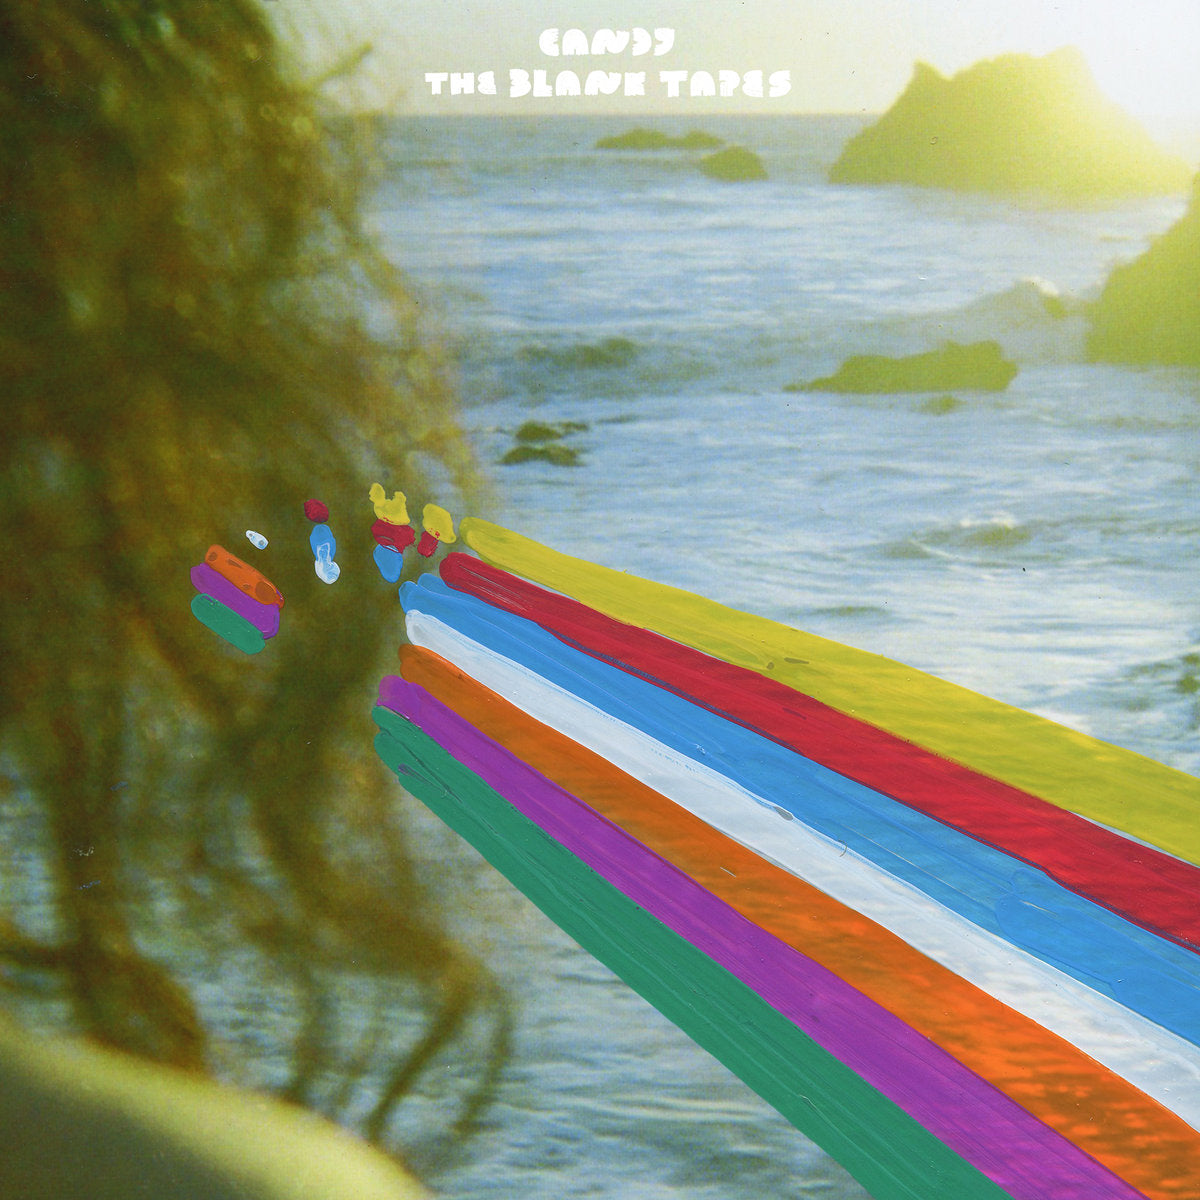 The Blank Tapes - Candy LP